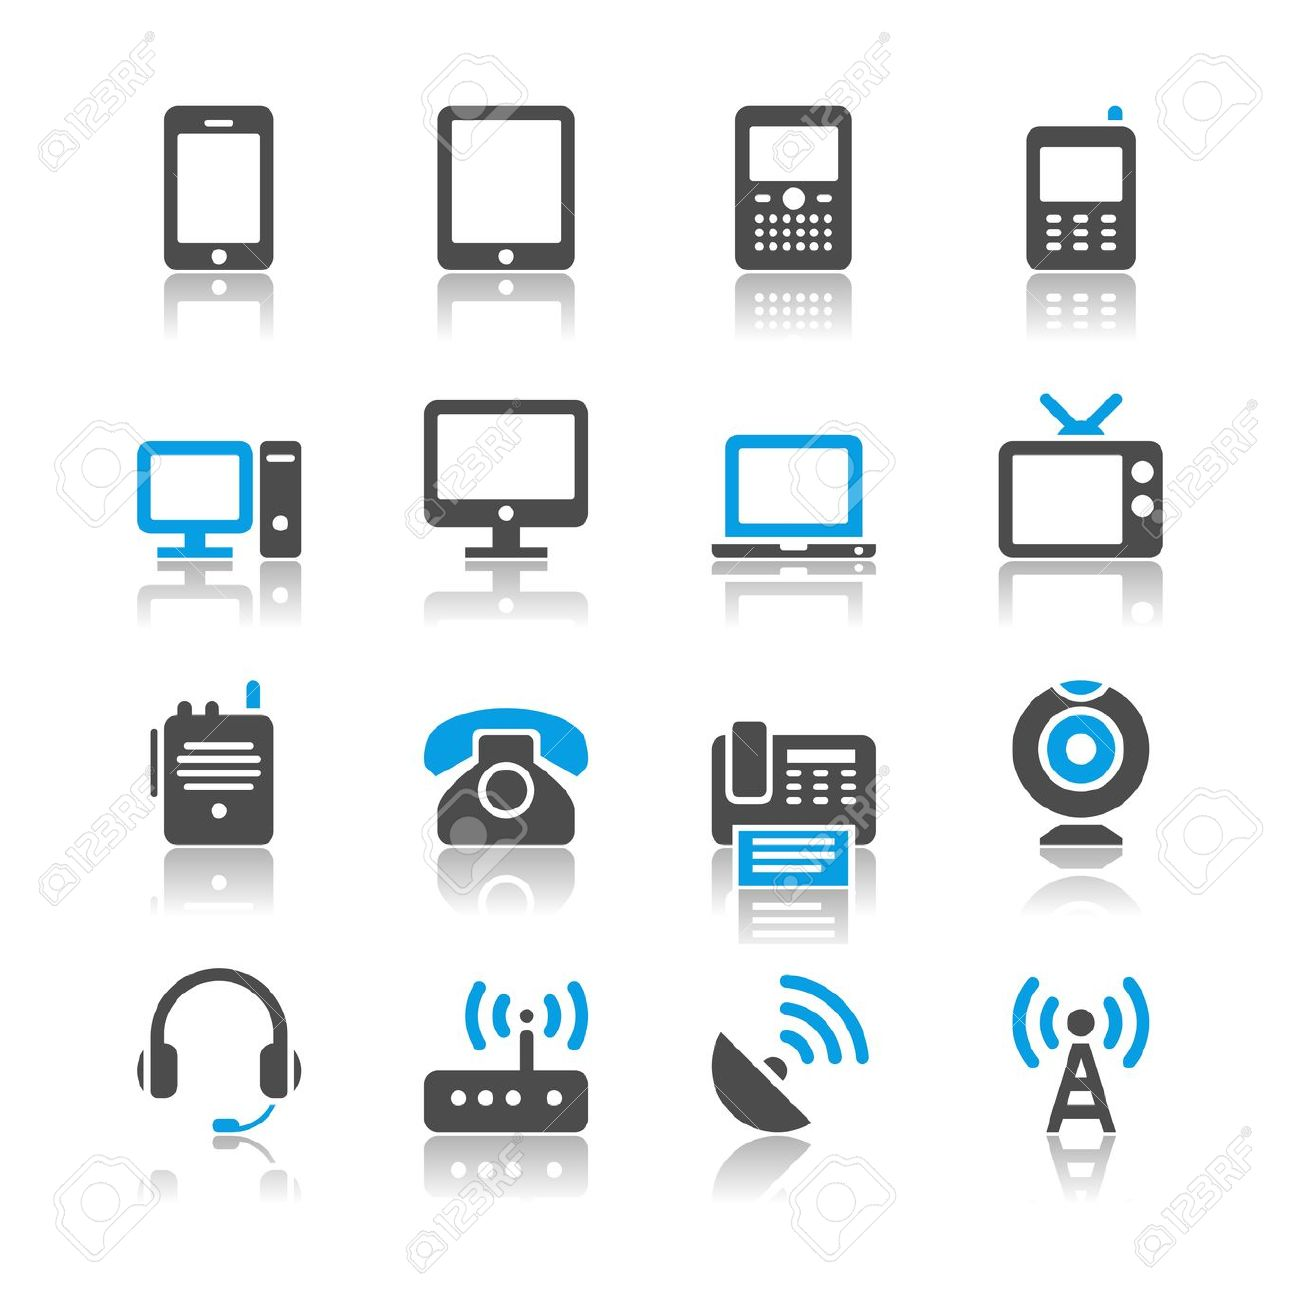 wireless: Communication device | Clipart Panda - Free Clipart Images